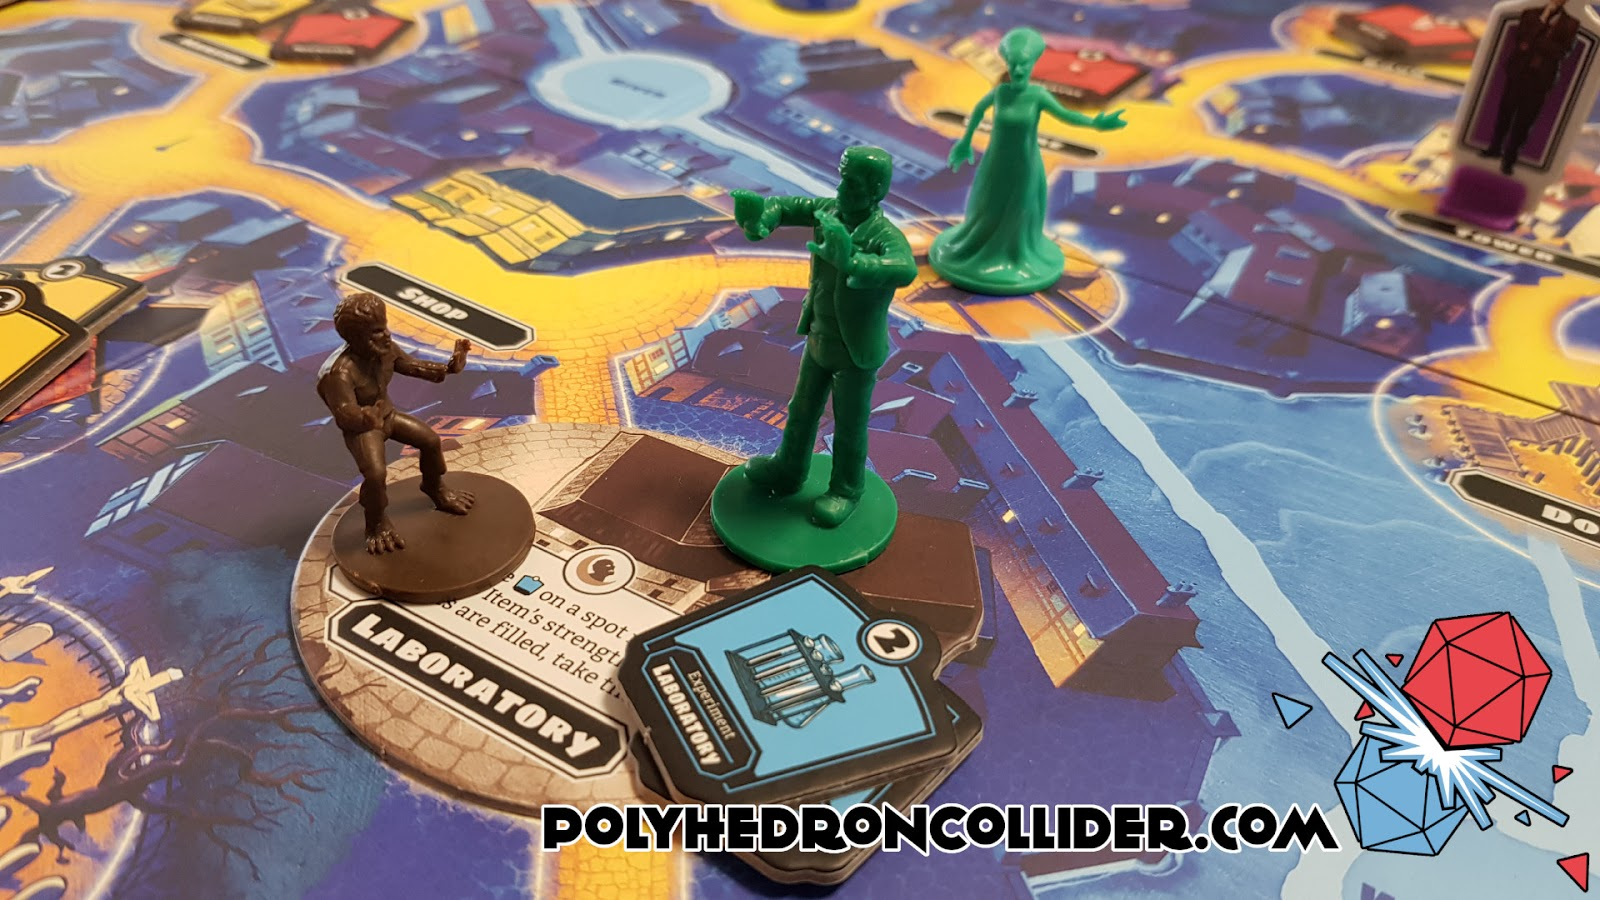 Polyhedron Collider Horrified Board Game Review - Rampaging Monsters